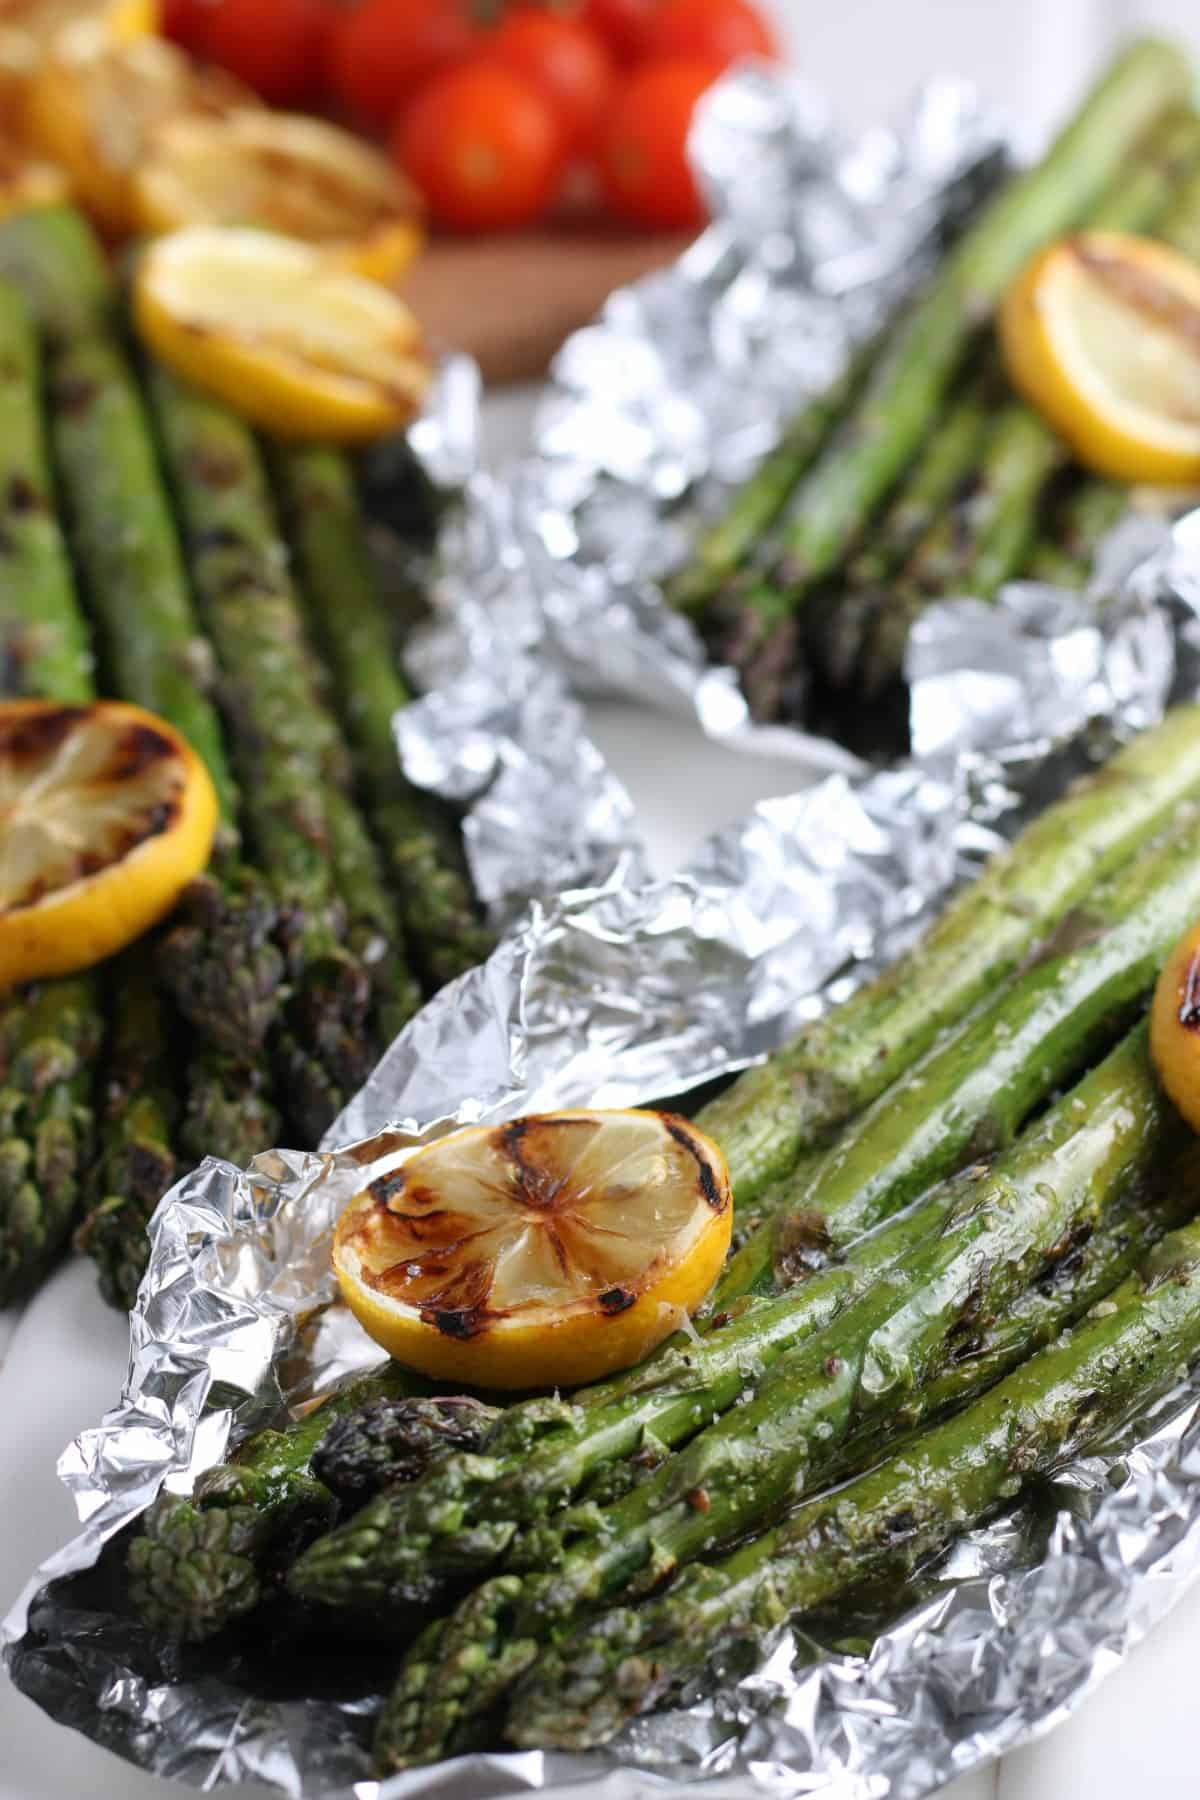 Closeup view of bundles of asparagus in open foil packets with grilled lemon slices laying alongside.